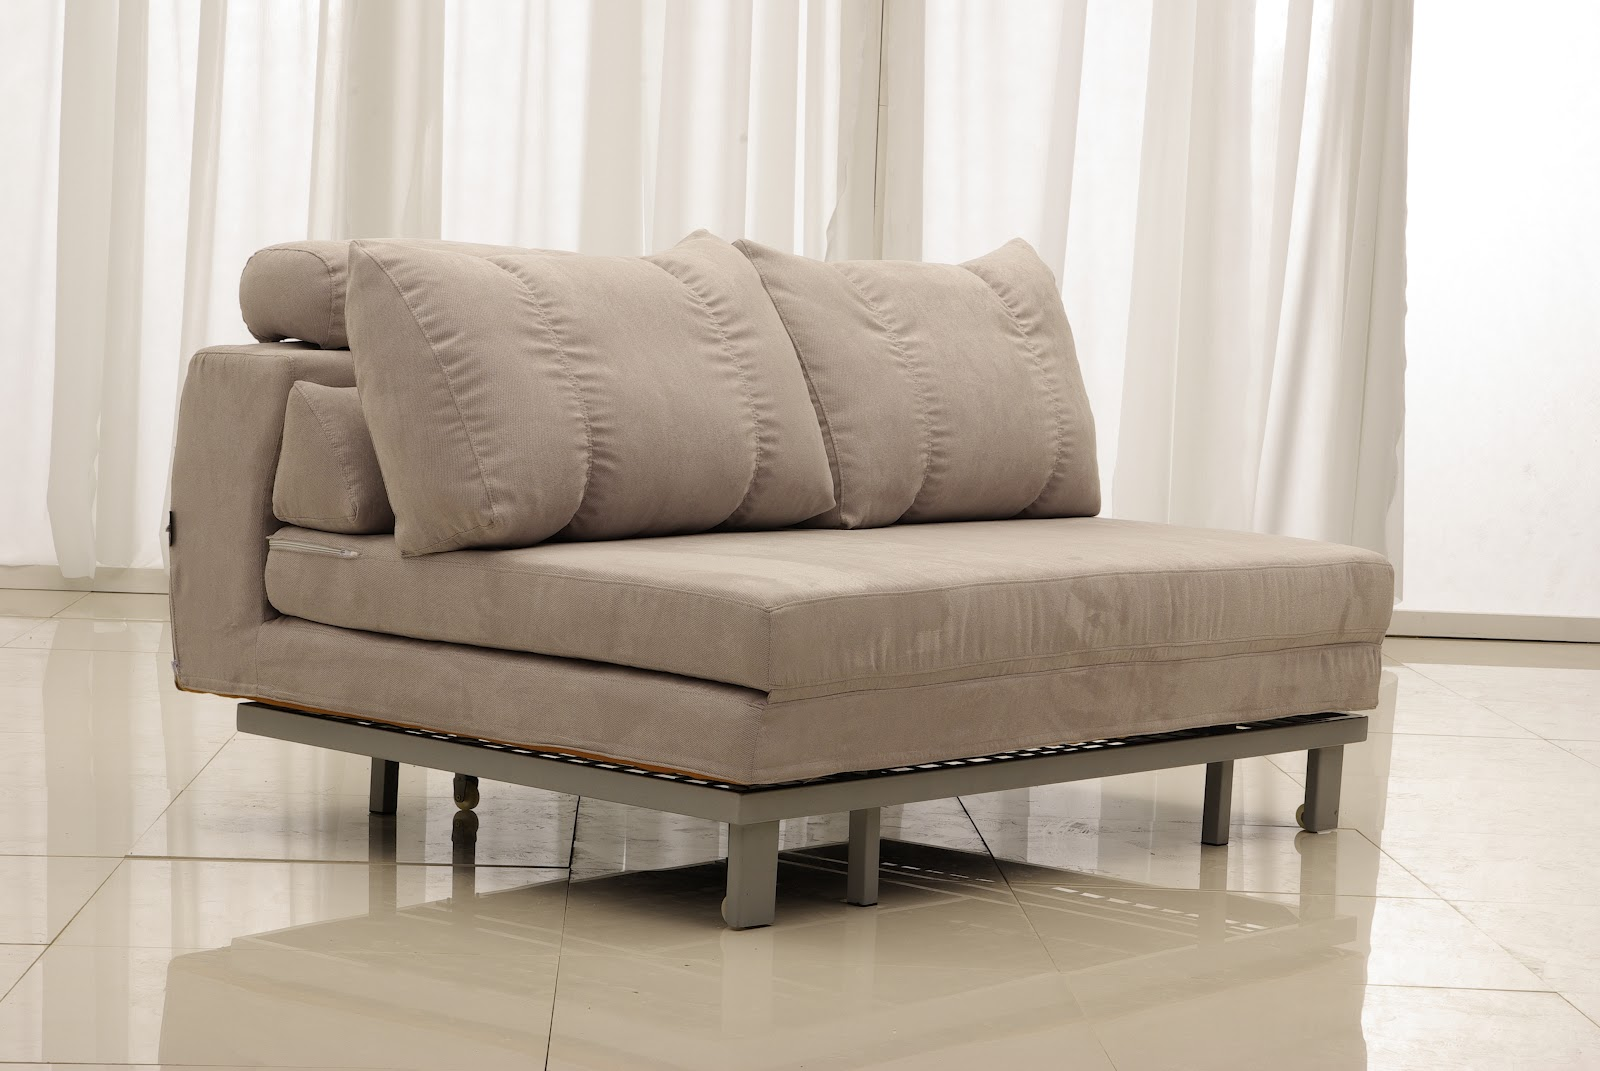 most-comfortable-sofa-beds  %Image Name